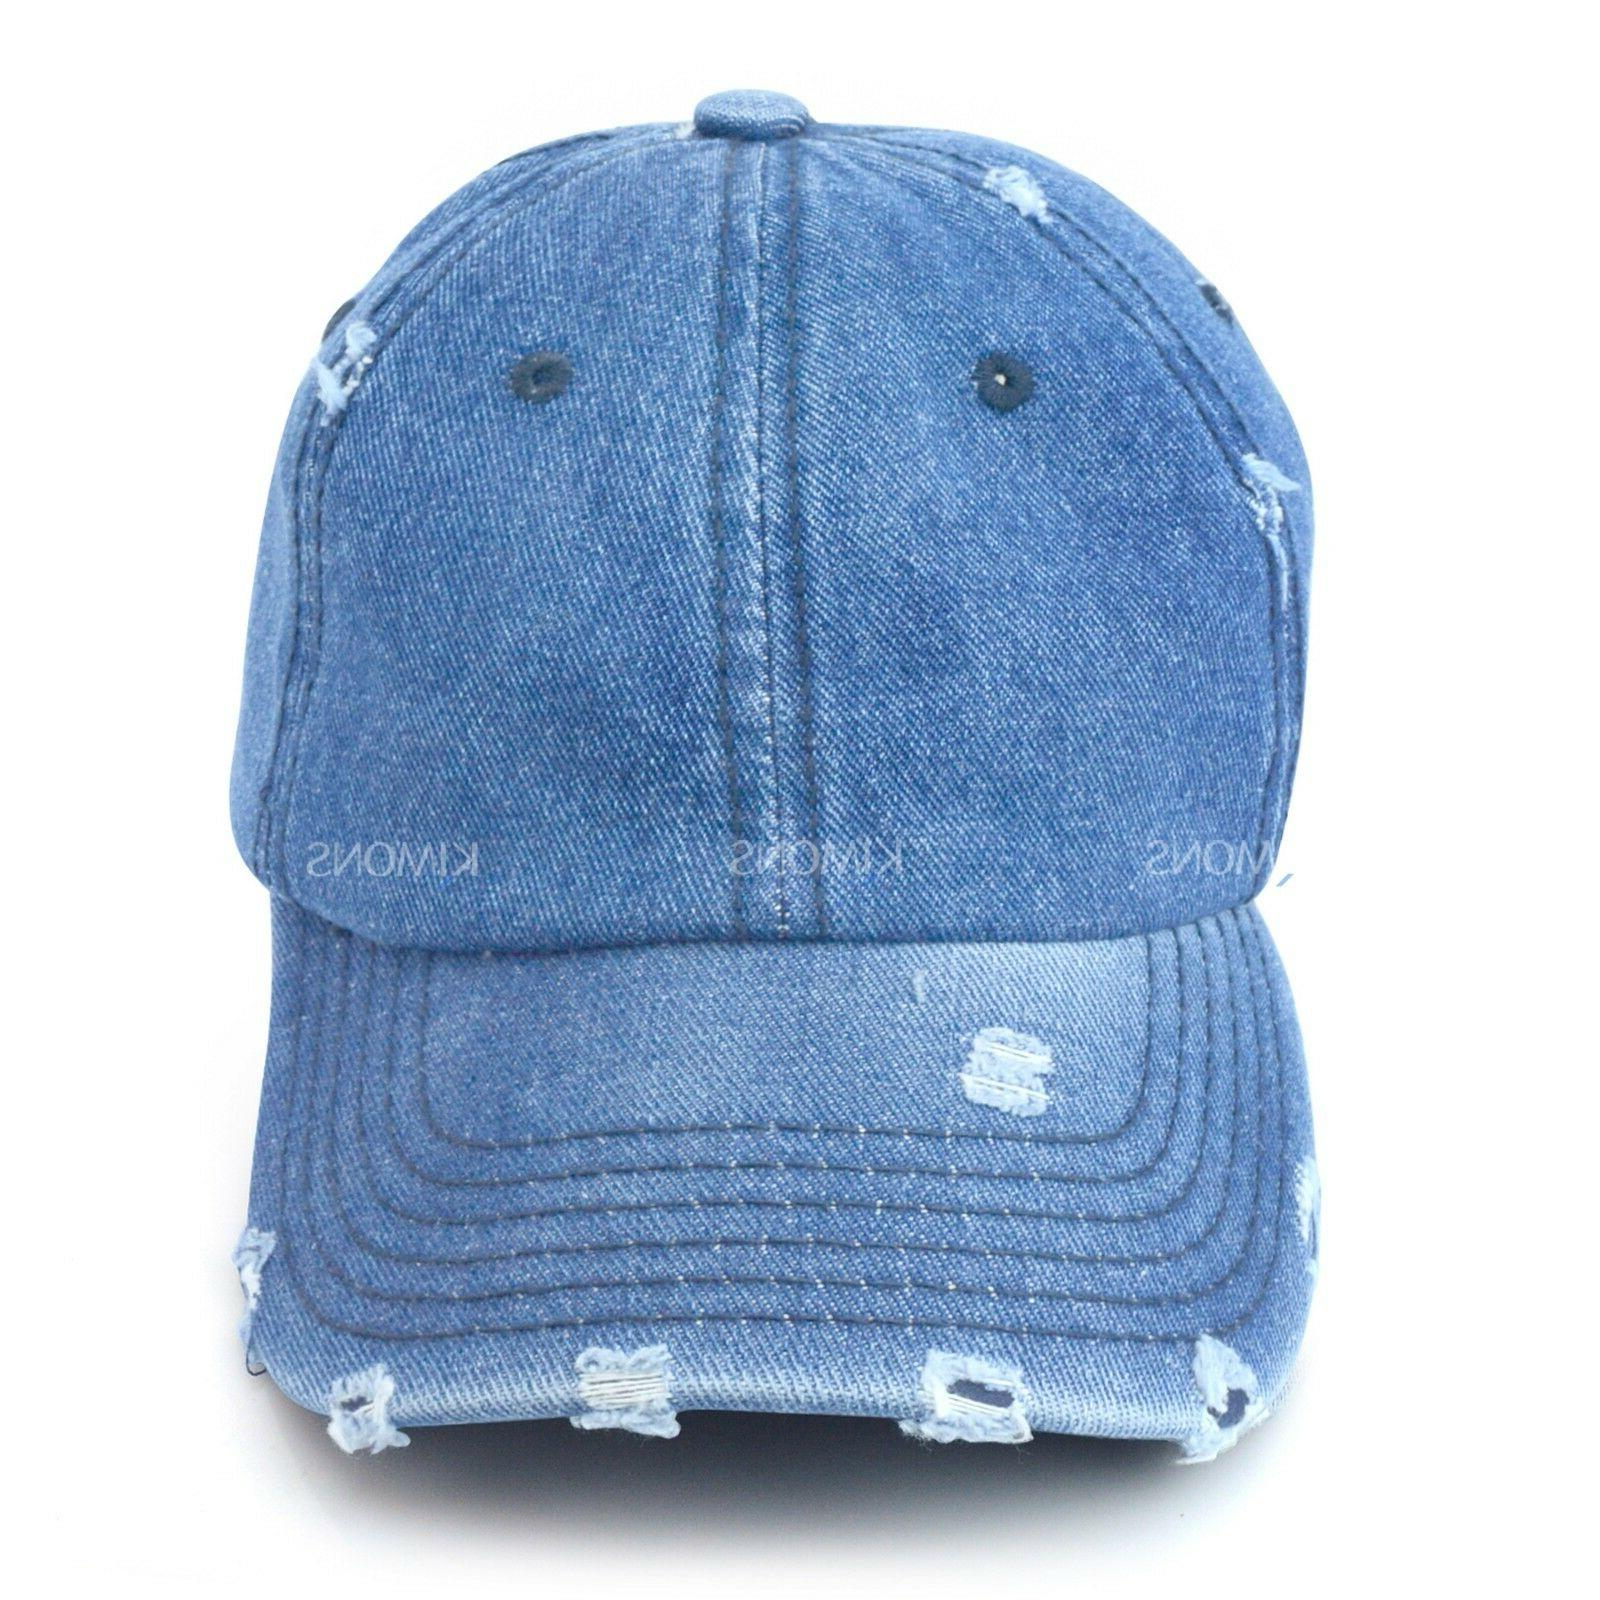 Vintage Distressed 100% Cotton Solid Denim Cap